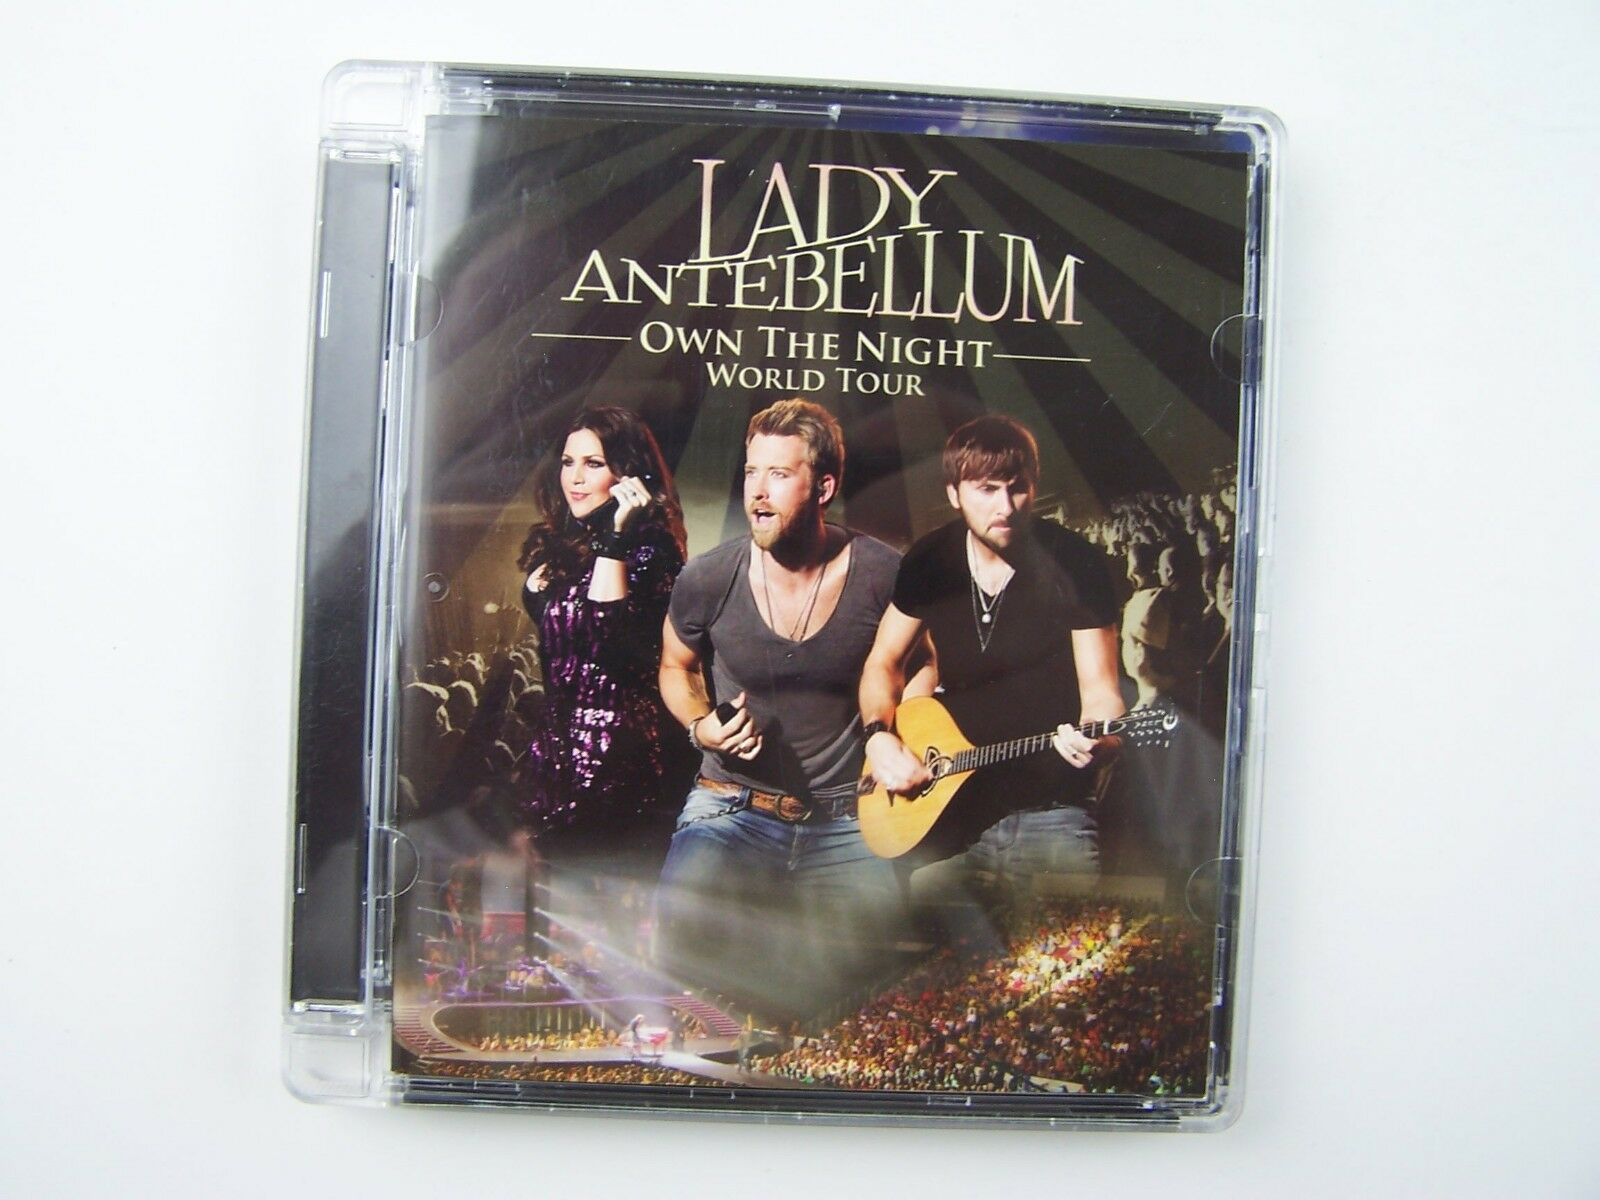 Lady Antebellum Own the Night World Tour DVD 8012130591